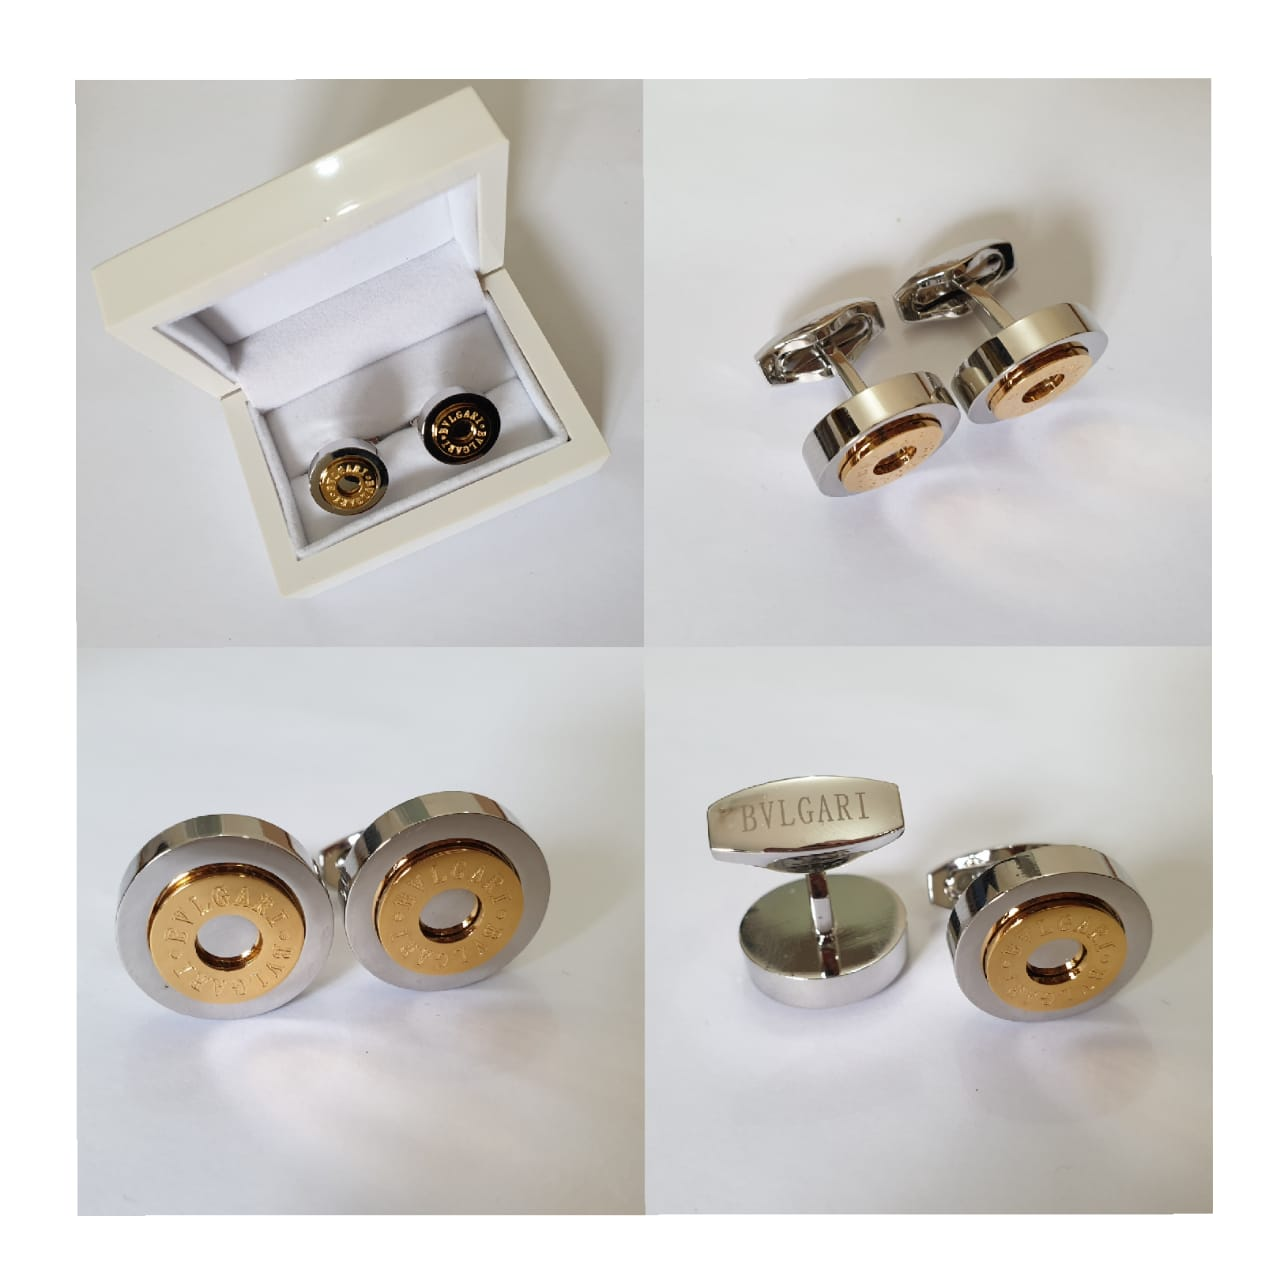 Desired cufflinks at reasonable price